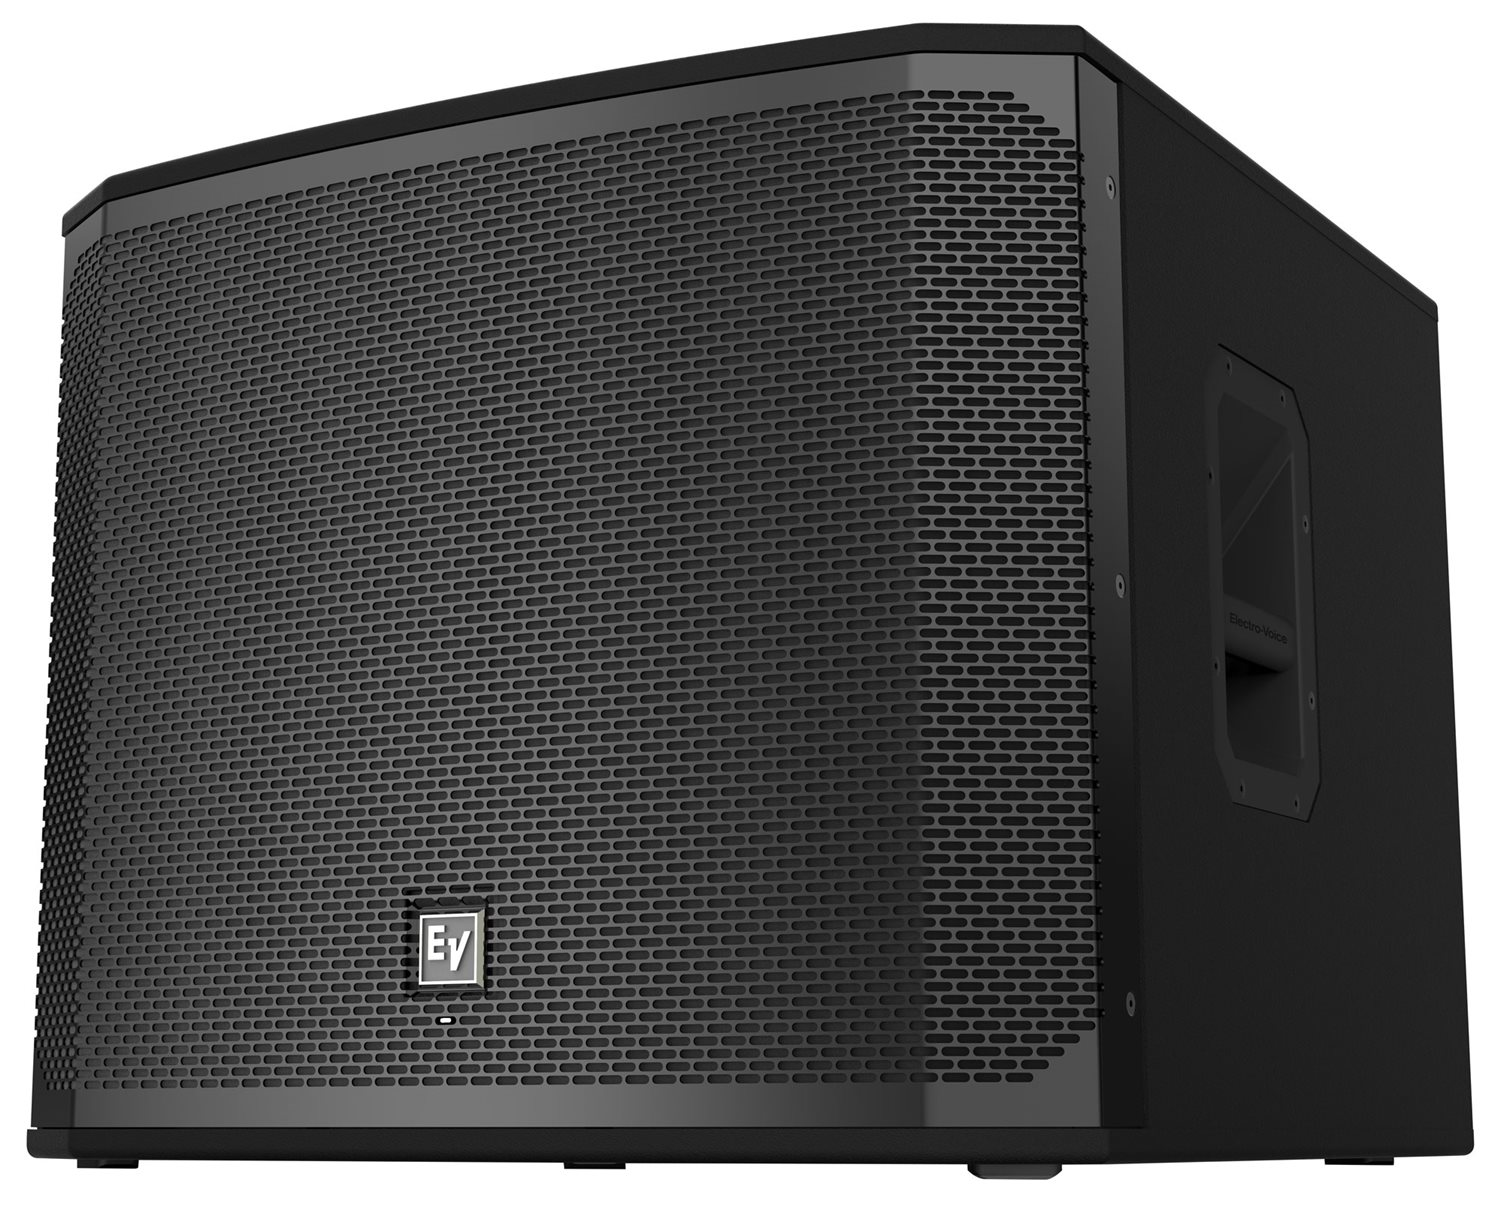 EV SUBWOOFER - This subwoofer allows for the best quality and power in terms of sound. The sub adds a deeper and more enhanced sound and bass which brings the power and music more to life.